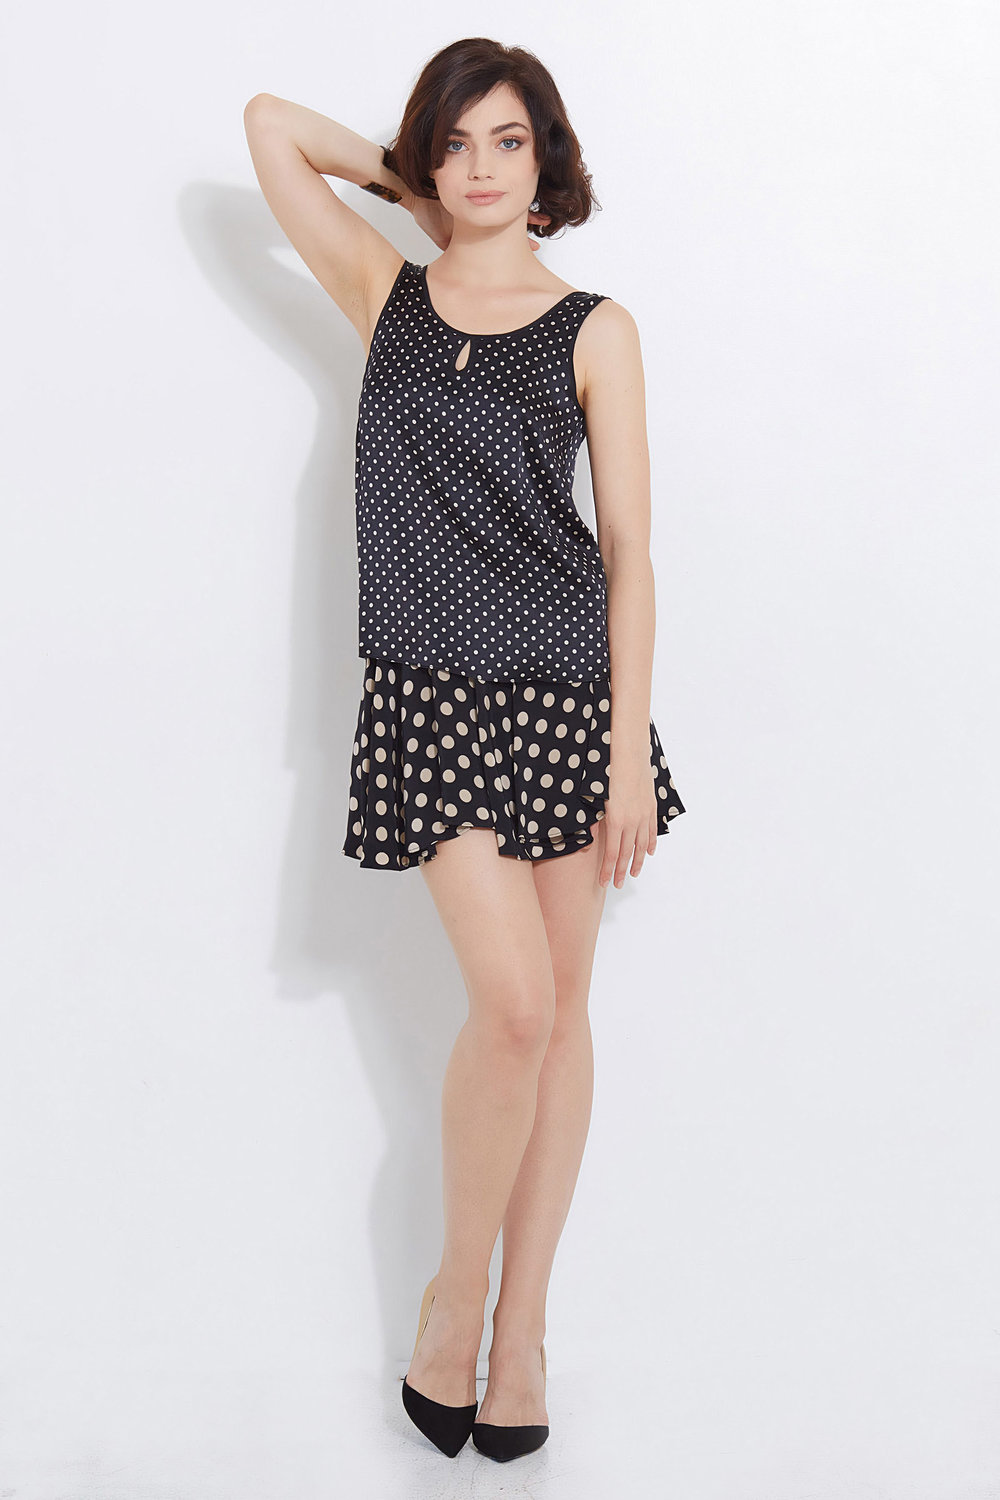 Raquelle Moon Tank Black Cream Polka Dot Darling 5.jpg